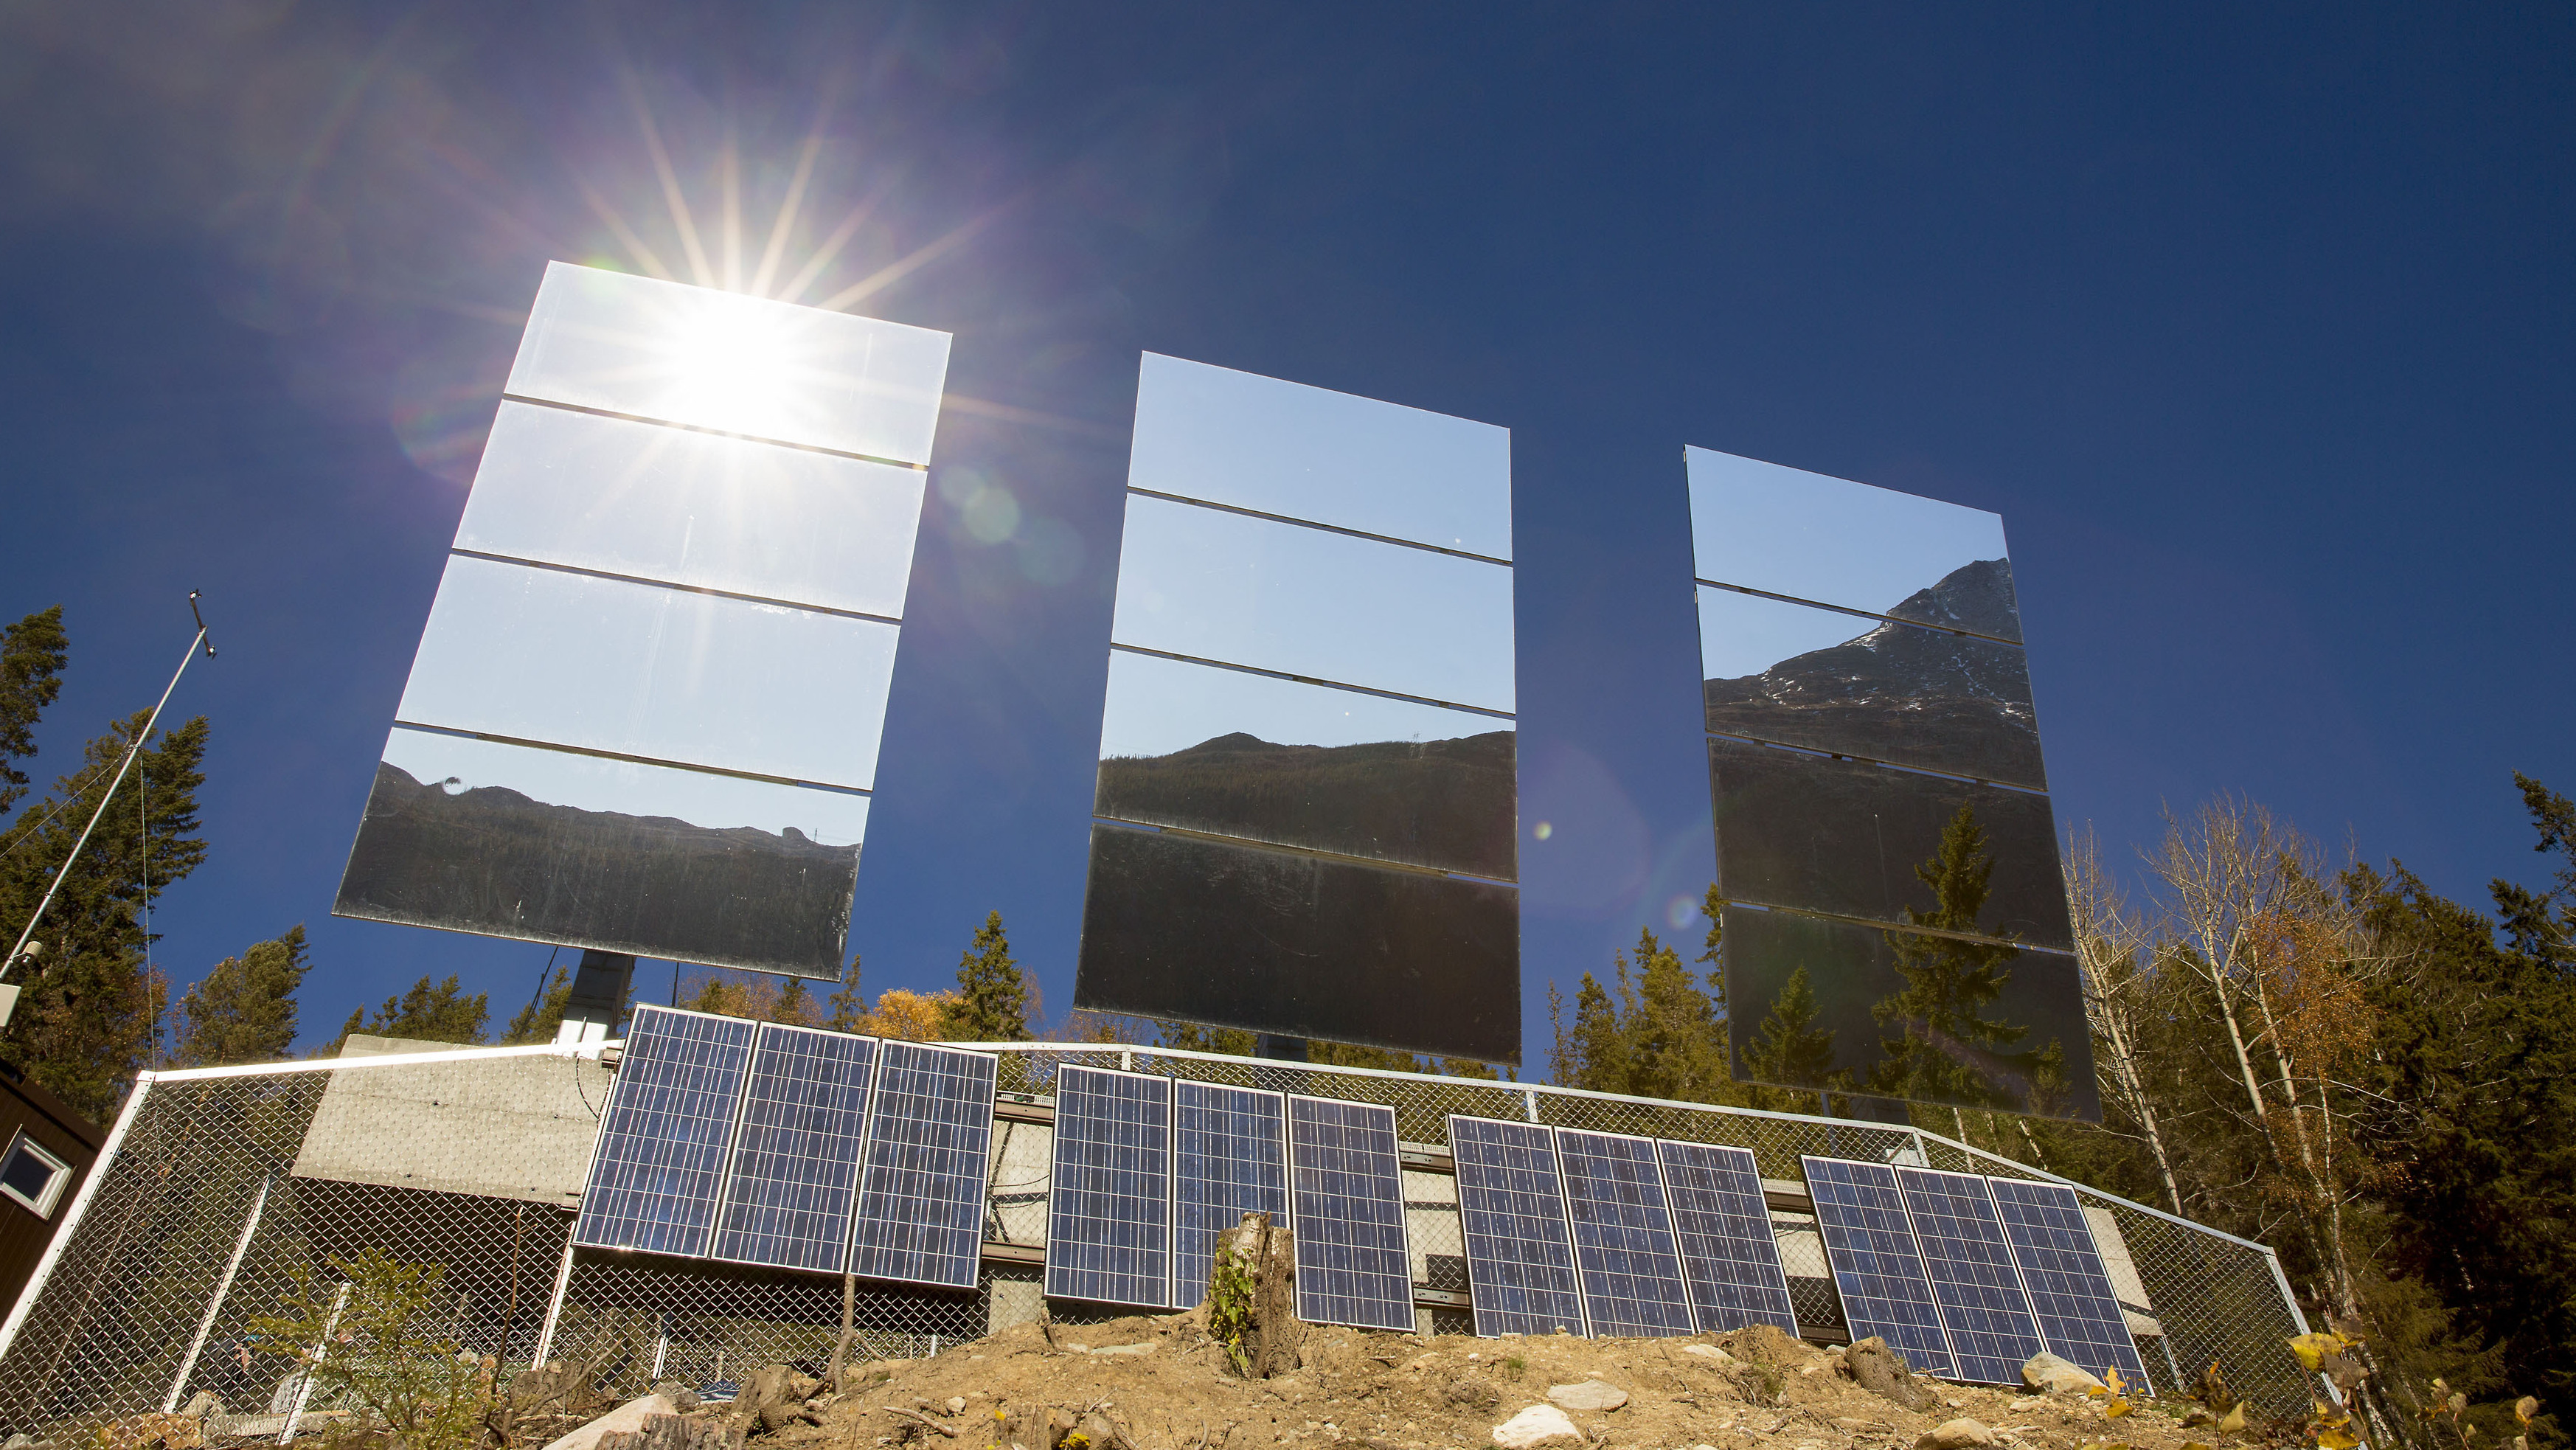 As Mirrors Beam Light To Town, Norwegians Share Patch Of Sun